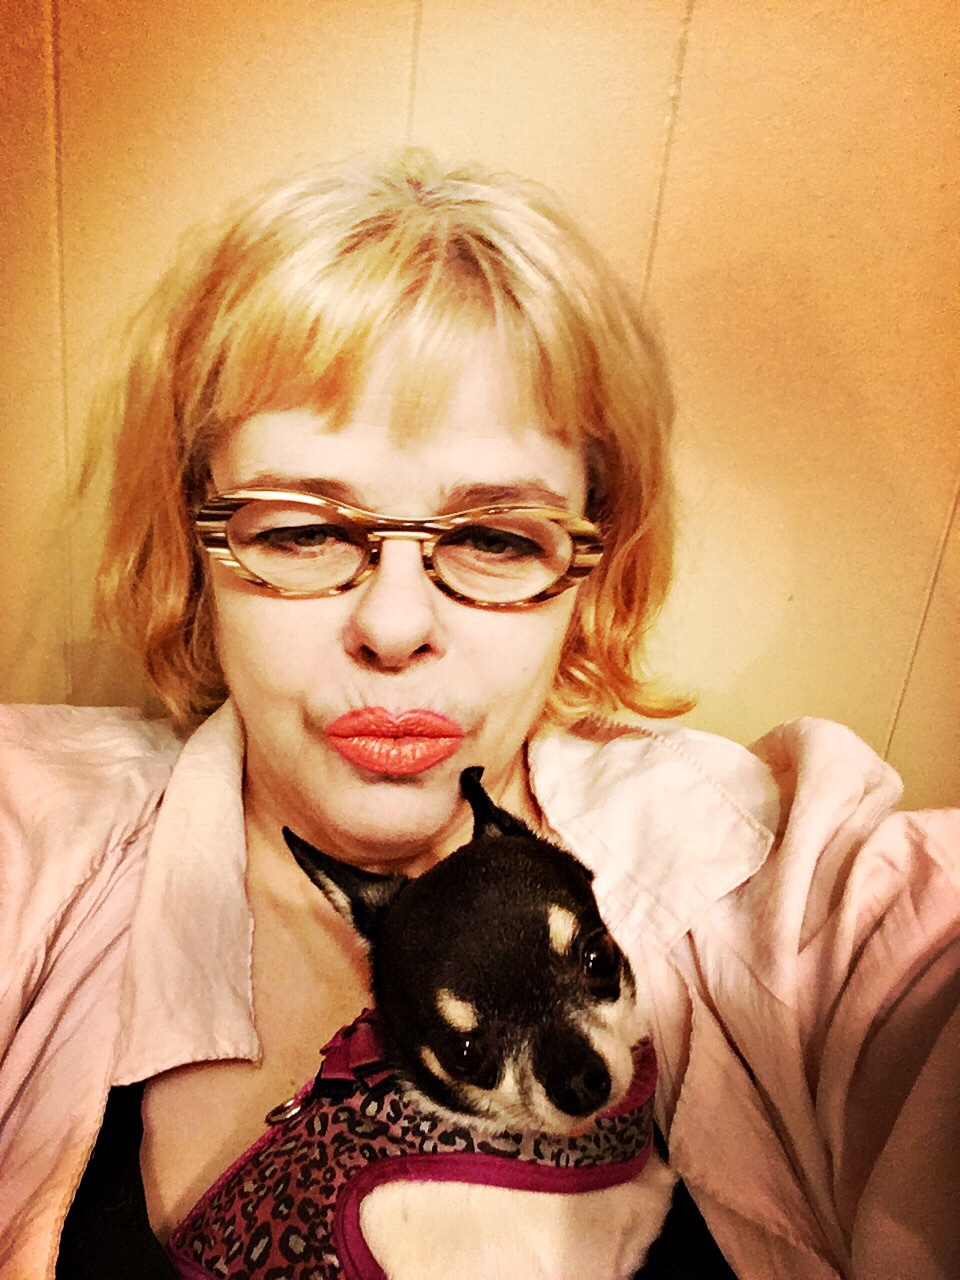 Puppy and me